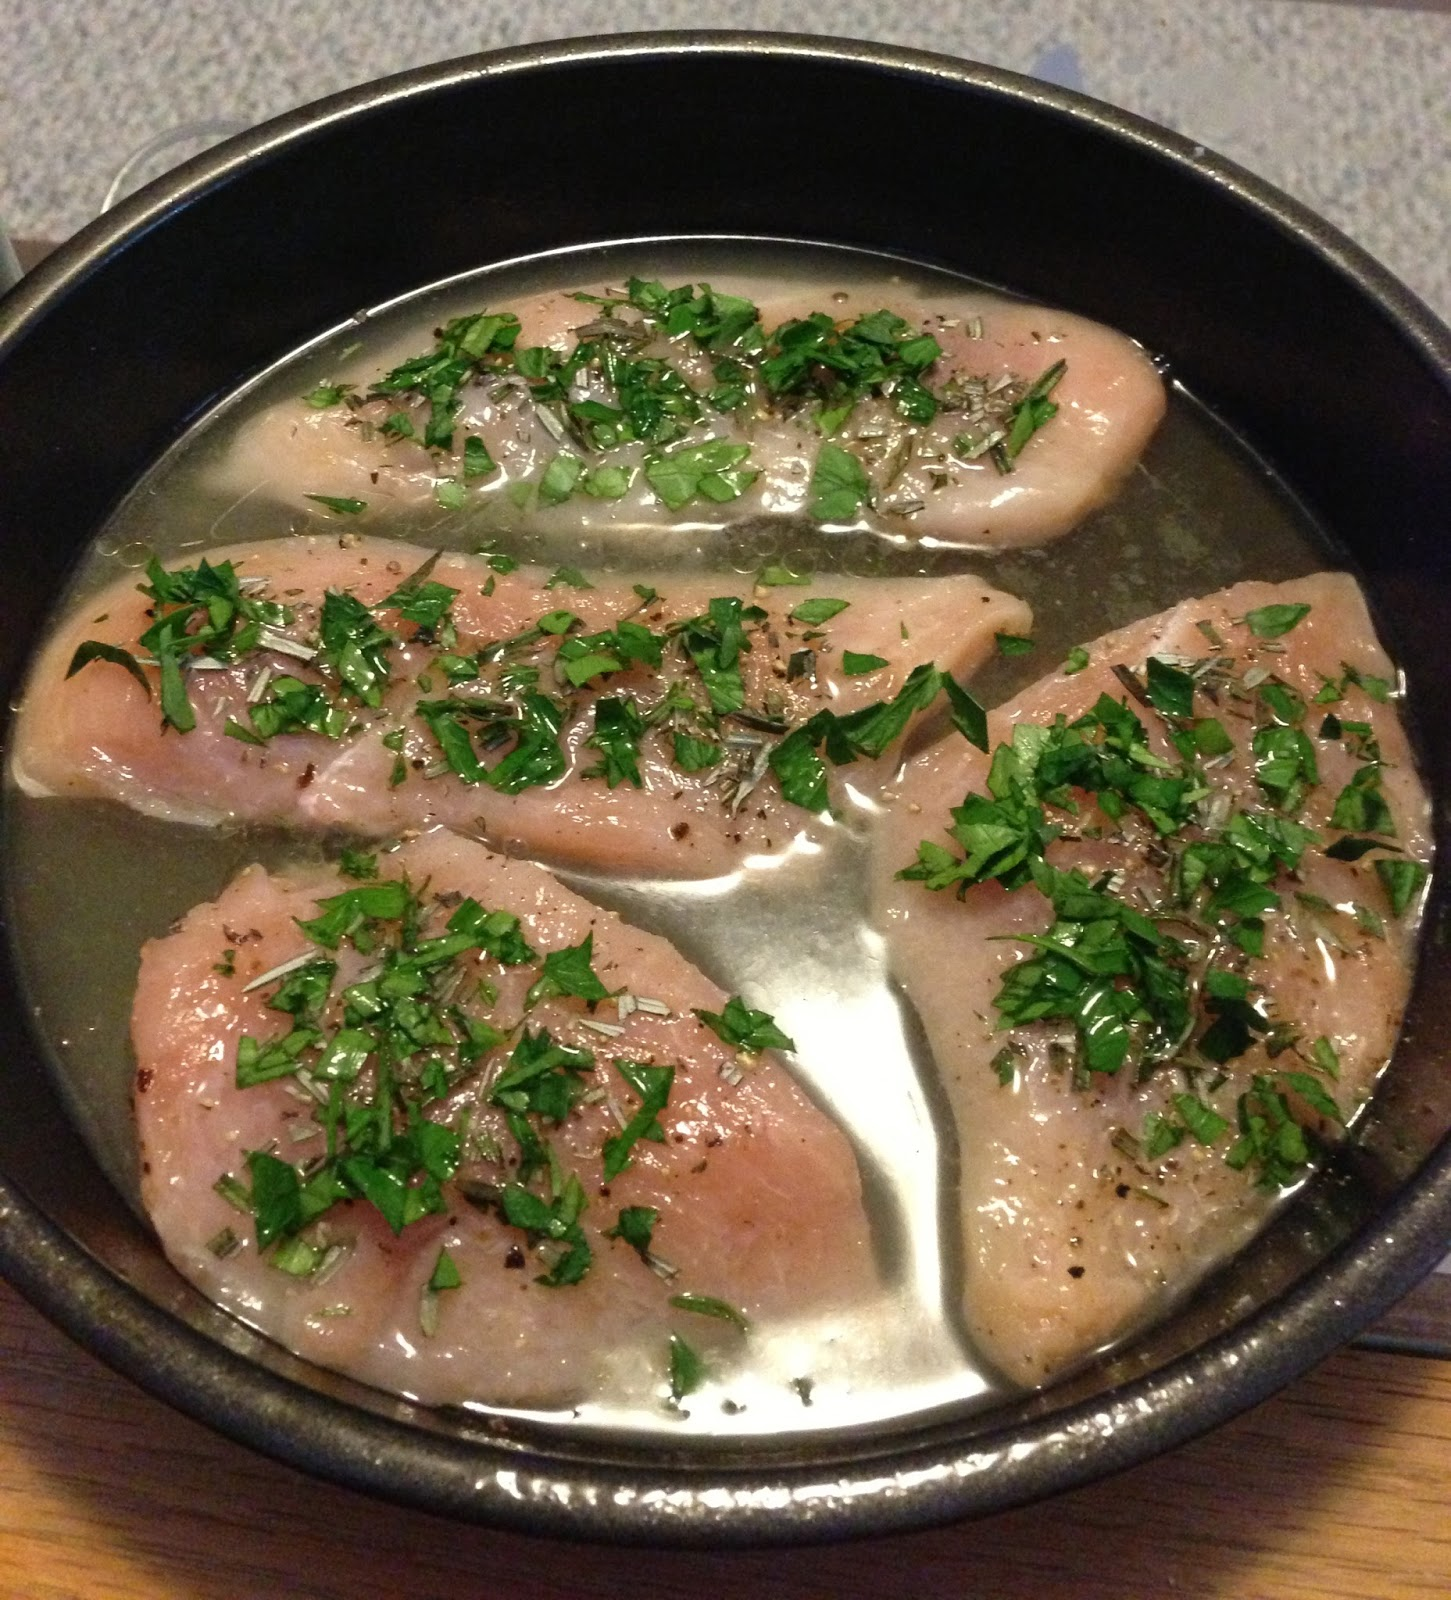 Baked Chicken 3 Points Plus Per Serving 1 Spray(s) Cooking Spray 1 Pound(s)  Uncooked Boneless Skinless Chicken Breast(s), Four 4 Oz Halves